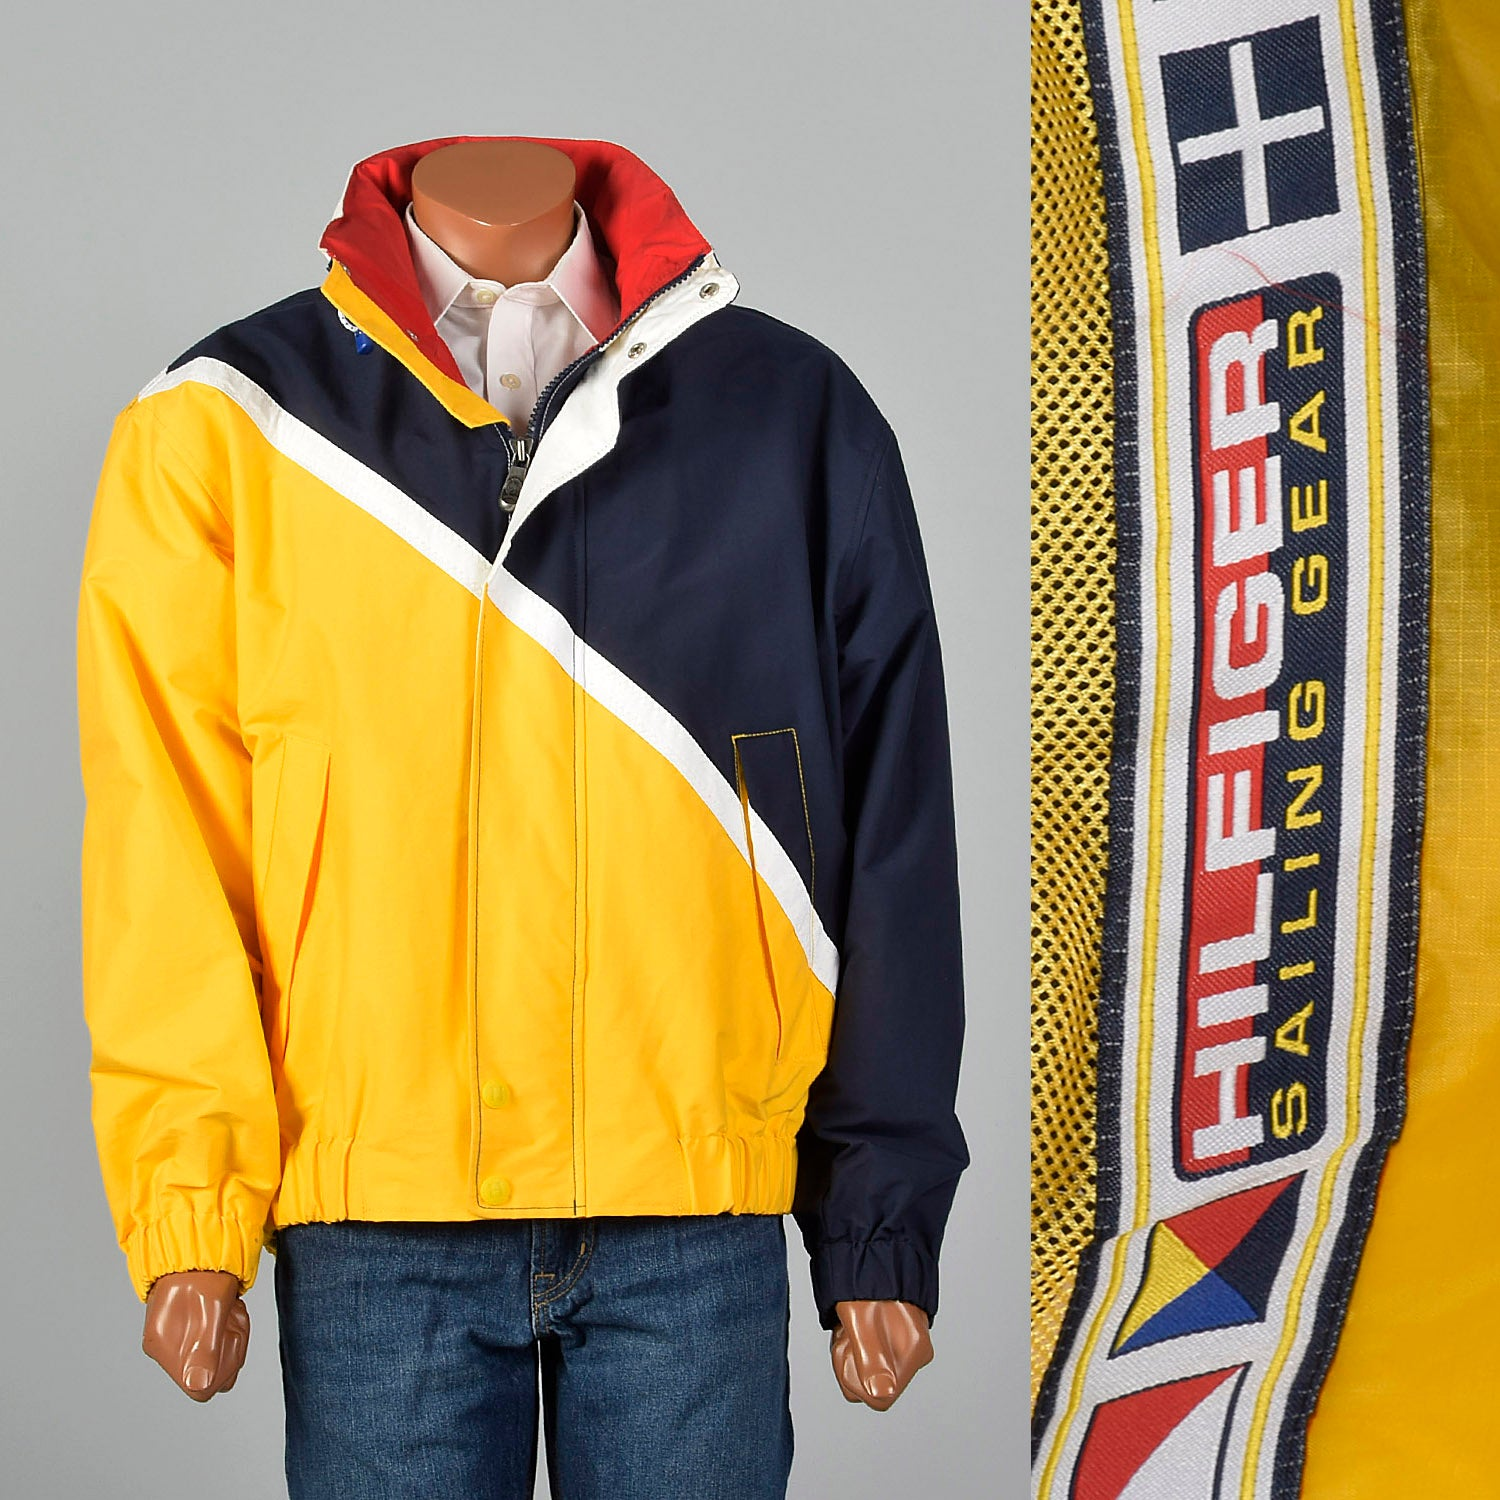 1990s Tommy Hilfiger Sailing Gear Yellow Jacket